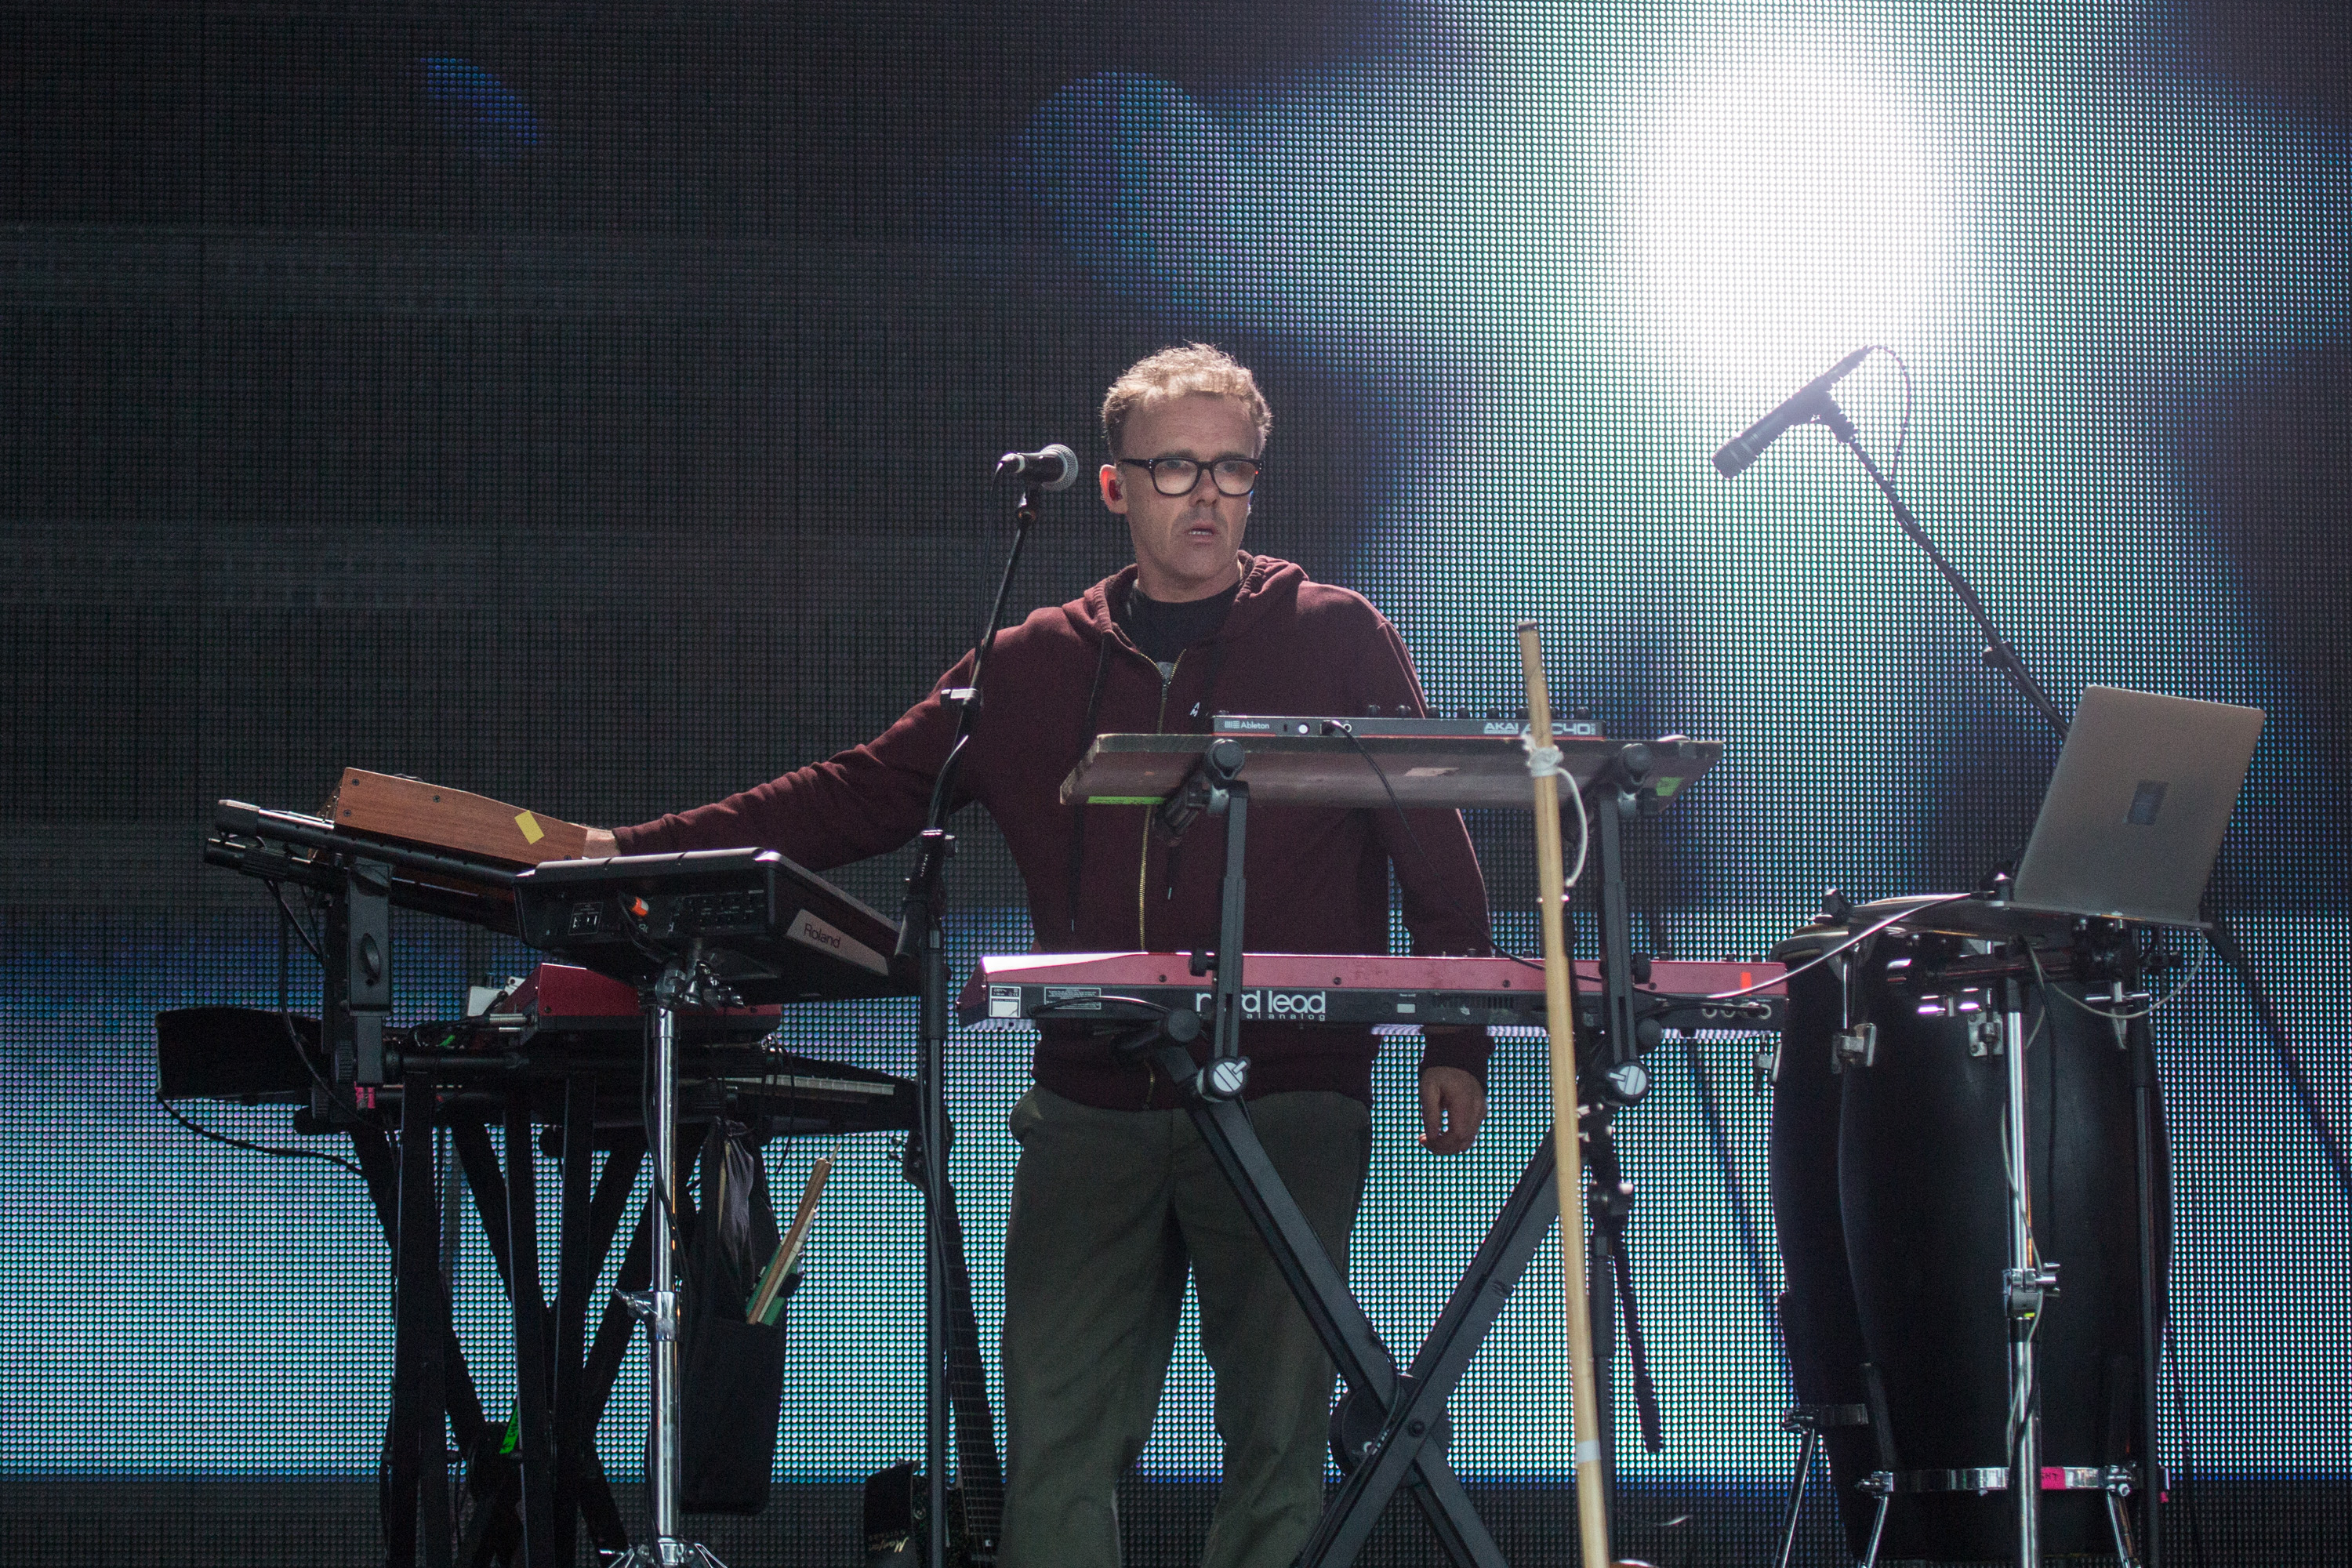 Leftfield at Camp Bestival 2017